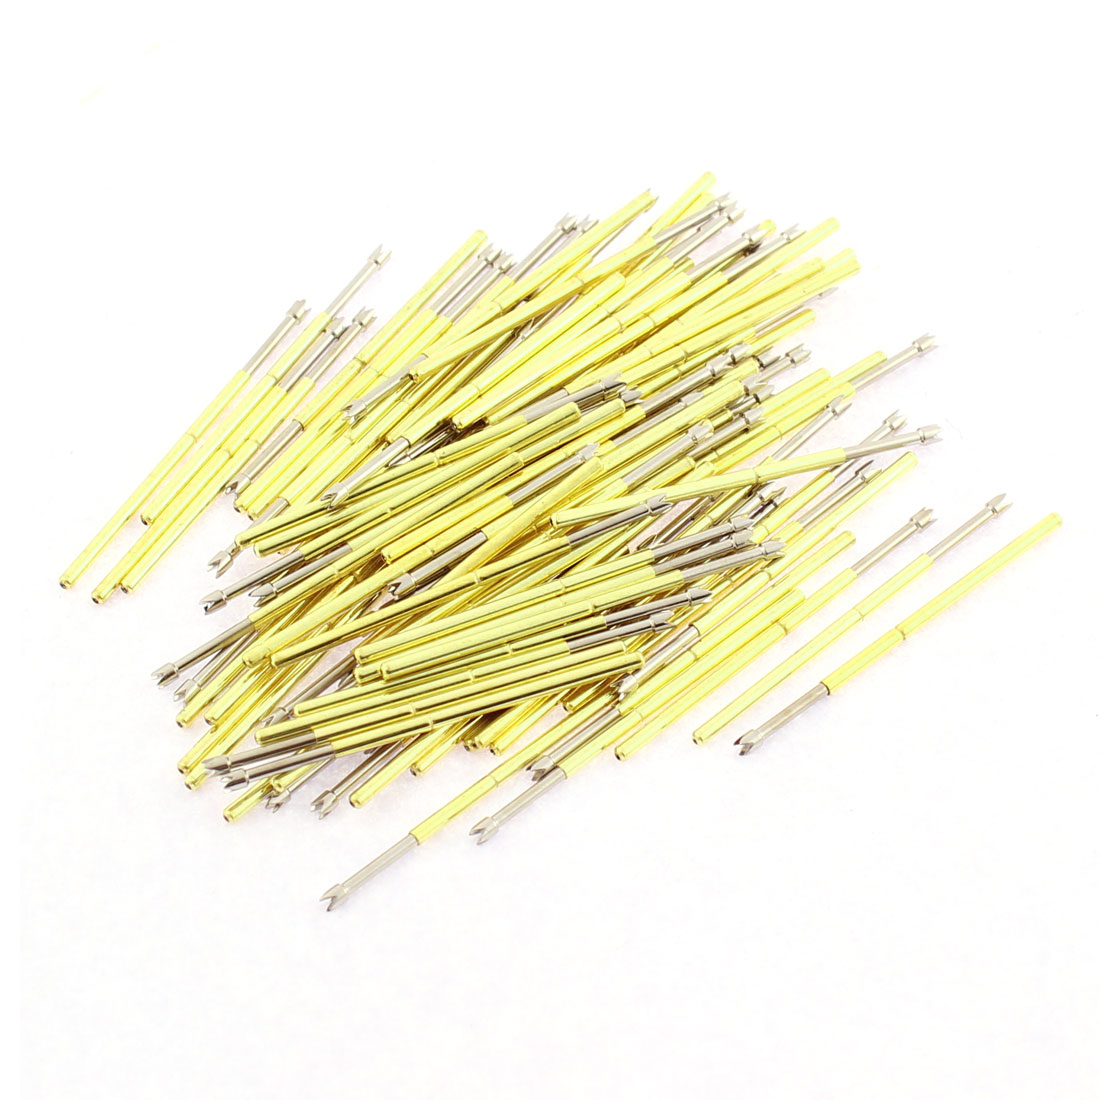 P100-Q2 33mm Long 4-Point Crown Tip Spring Loaded Contact Test Probe Pin 100Pcs